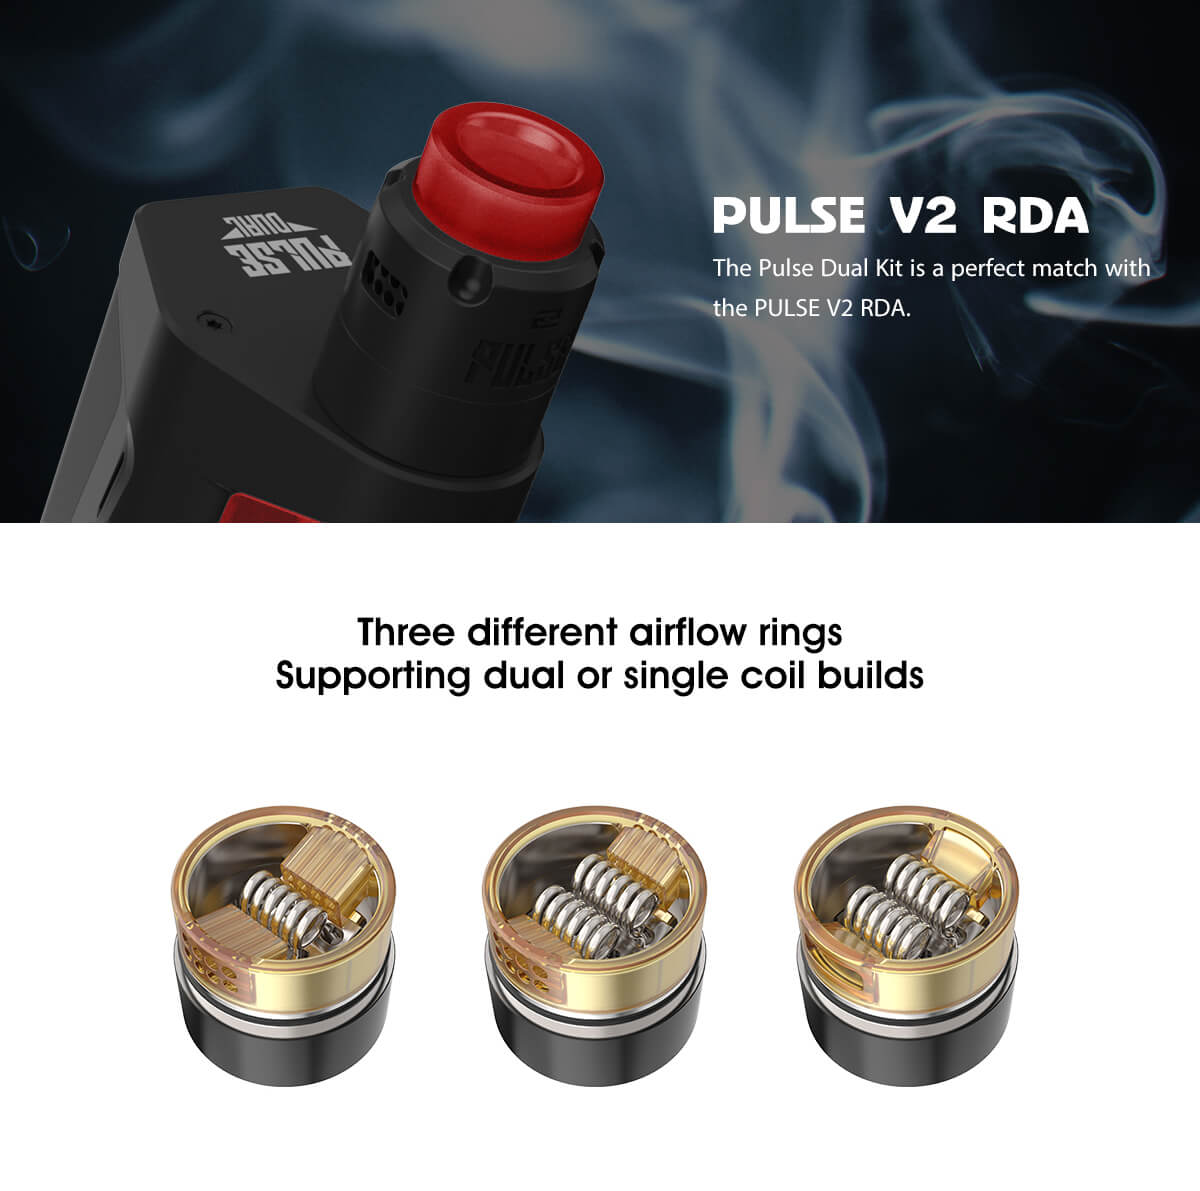 Vandy Vape Pulse Dual Kit Pulse V2 RDA & Different Airflow Ring Options